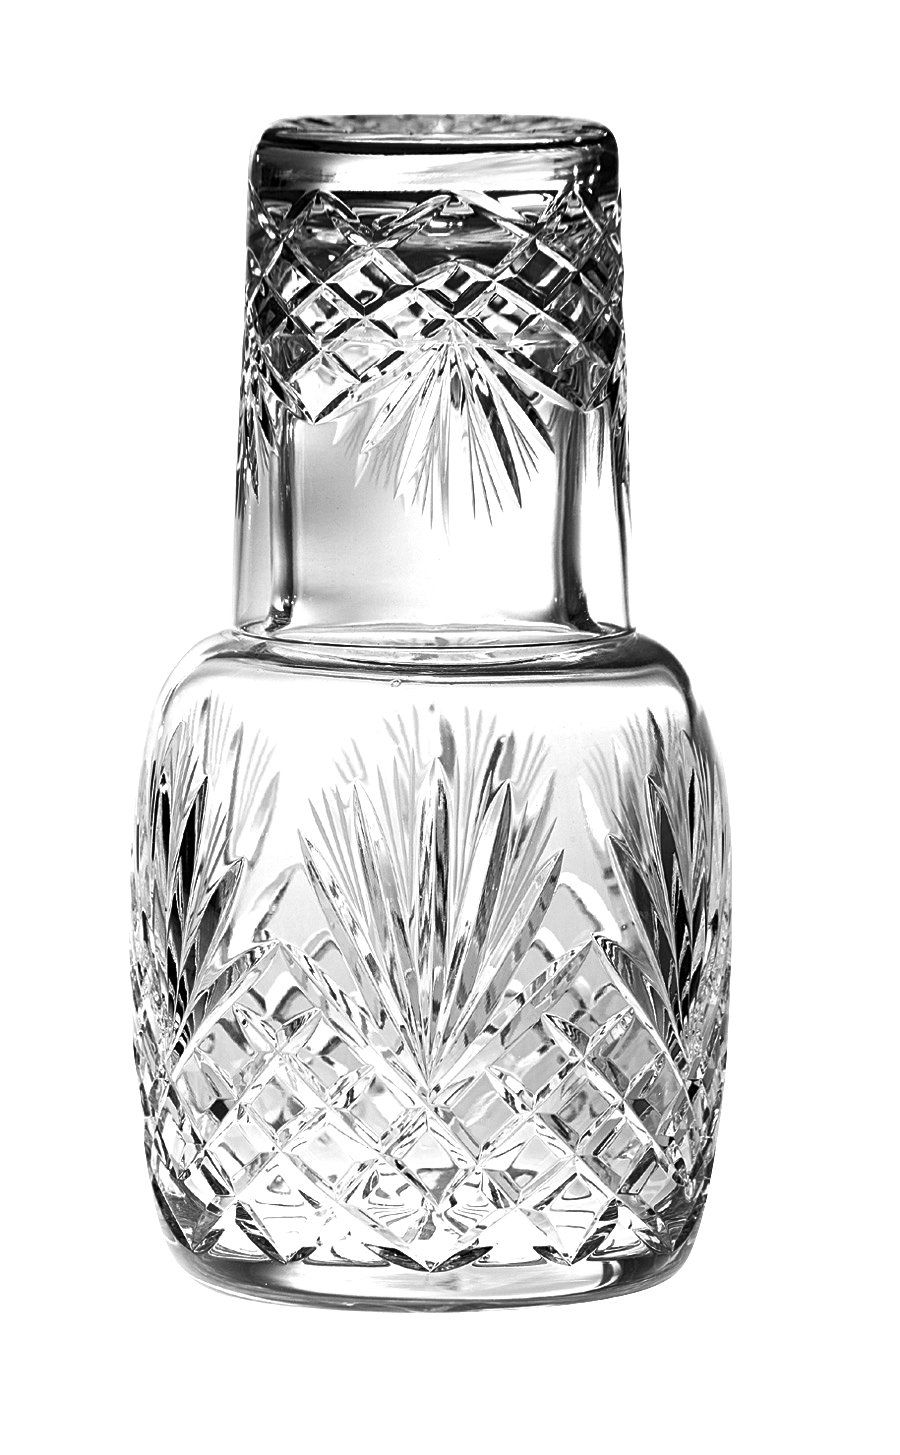 Barski - Mouth Blown - Hand Cut - Crystal - 2 Piece Set - 25 oz . Bedside Night Carafe / Desktop Carafe with Tumbler Glass - 8.25'' H - Made in Europe